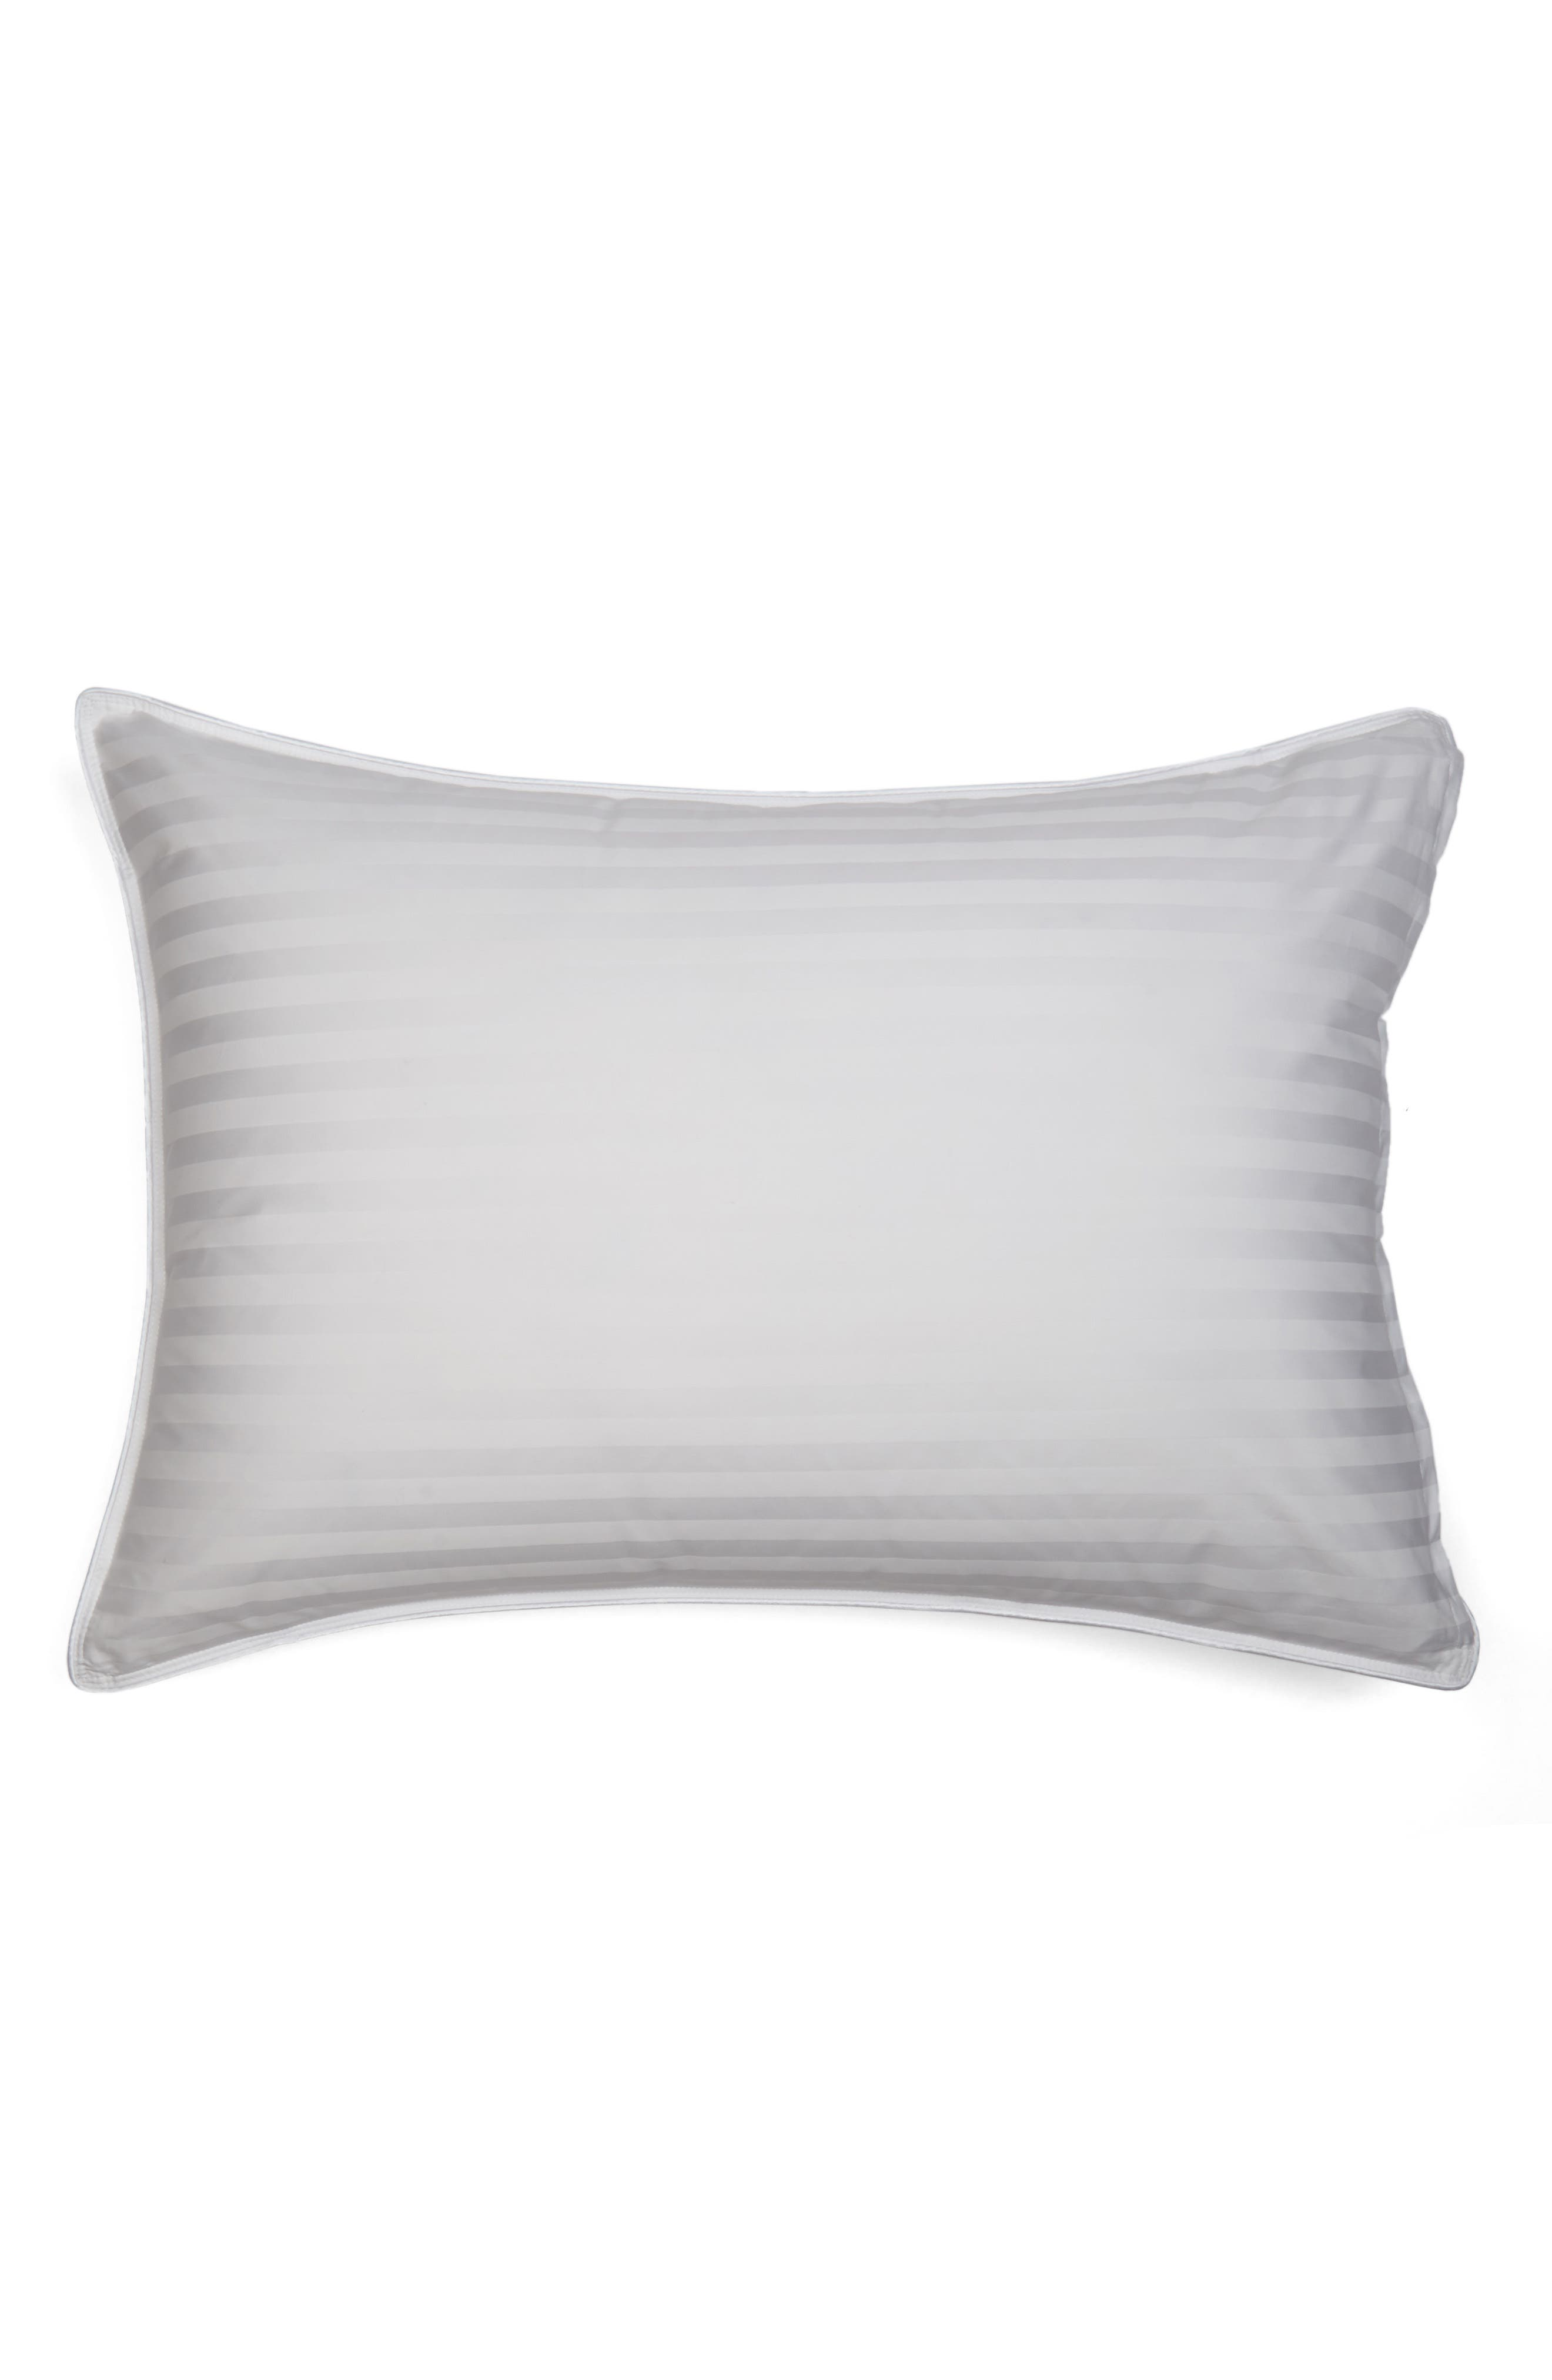 Feather & Down Chamber Pillow,                         Main,                         color, WHITE